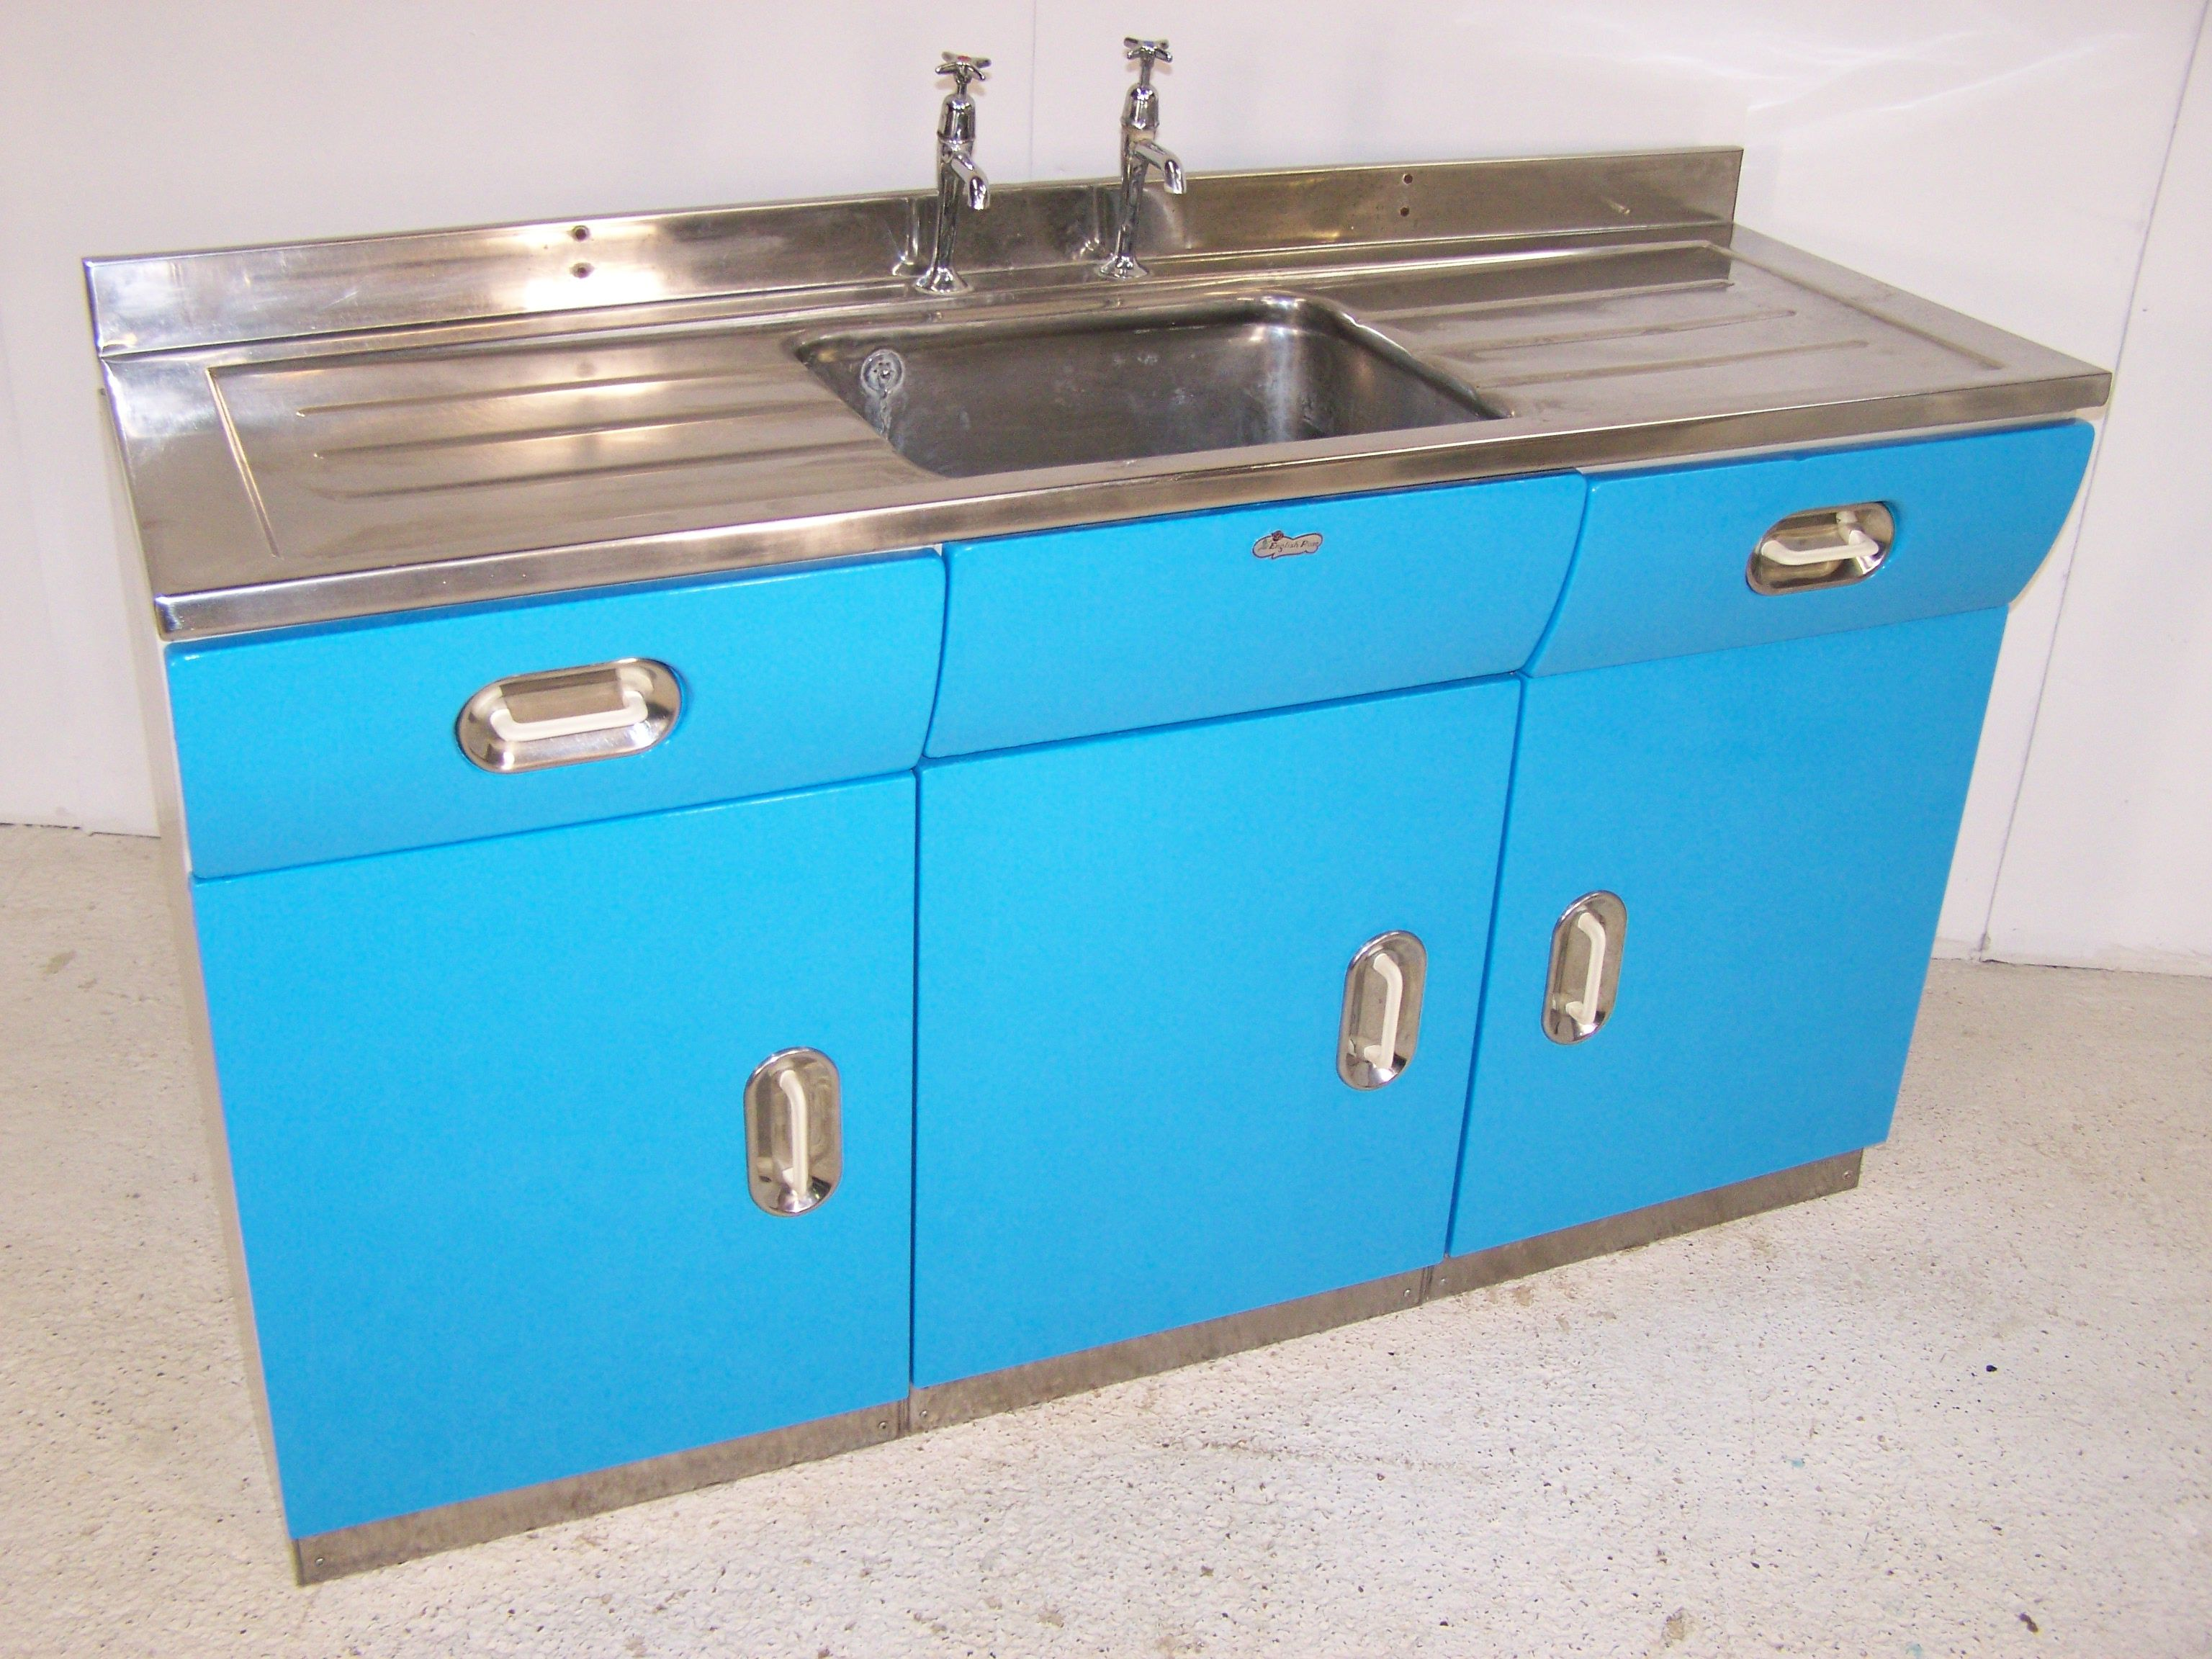 Vintage 40s Metal Alloy English Rose Kitchen Sink Unit In Blue Vintage Kitchen Sink Kitchen Sink Units Vintage Sofa